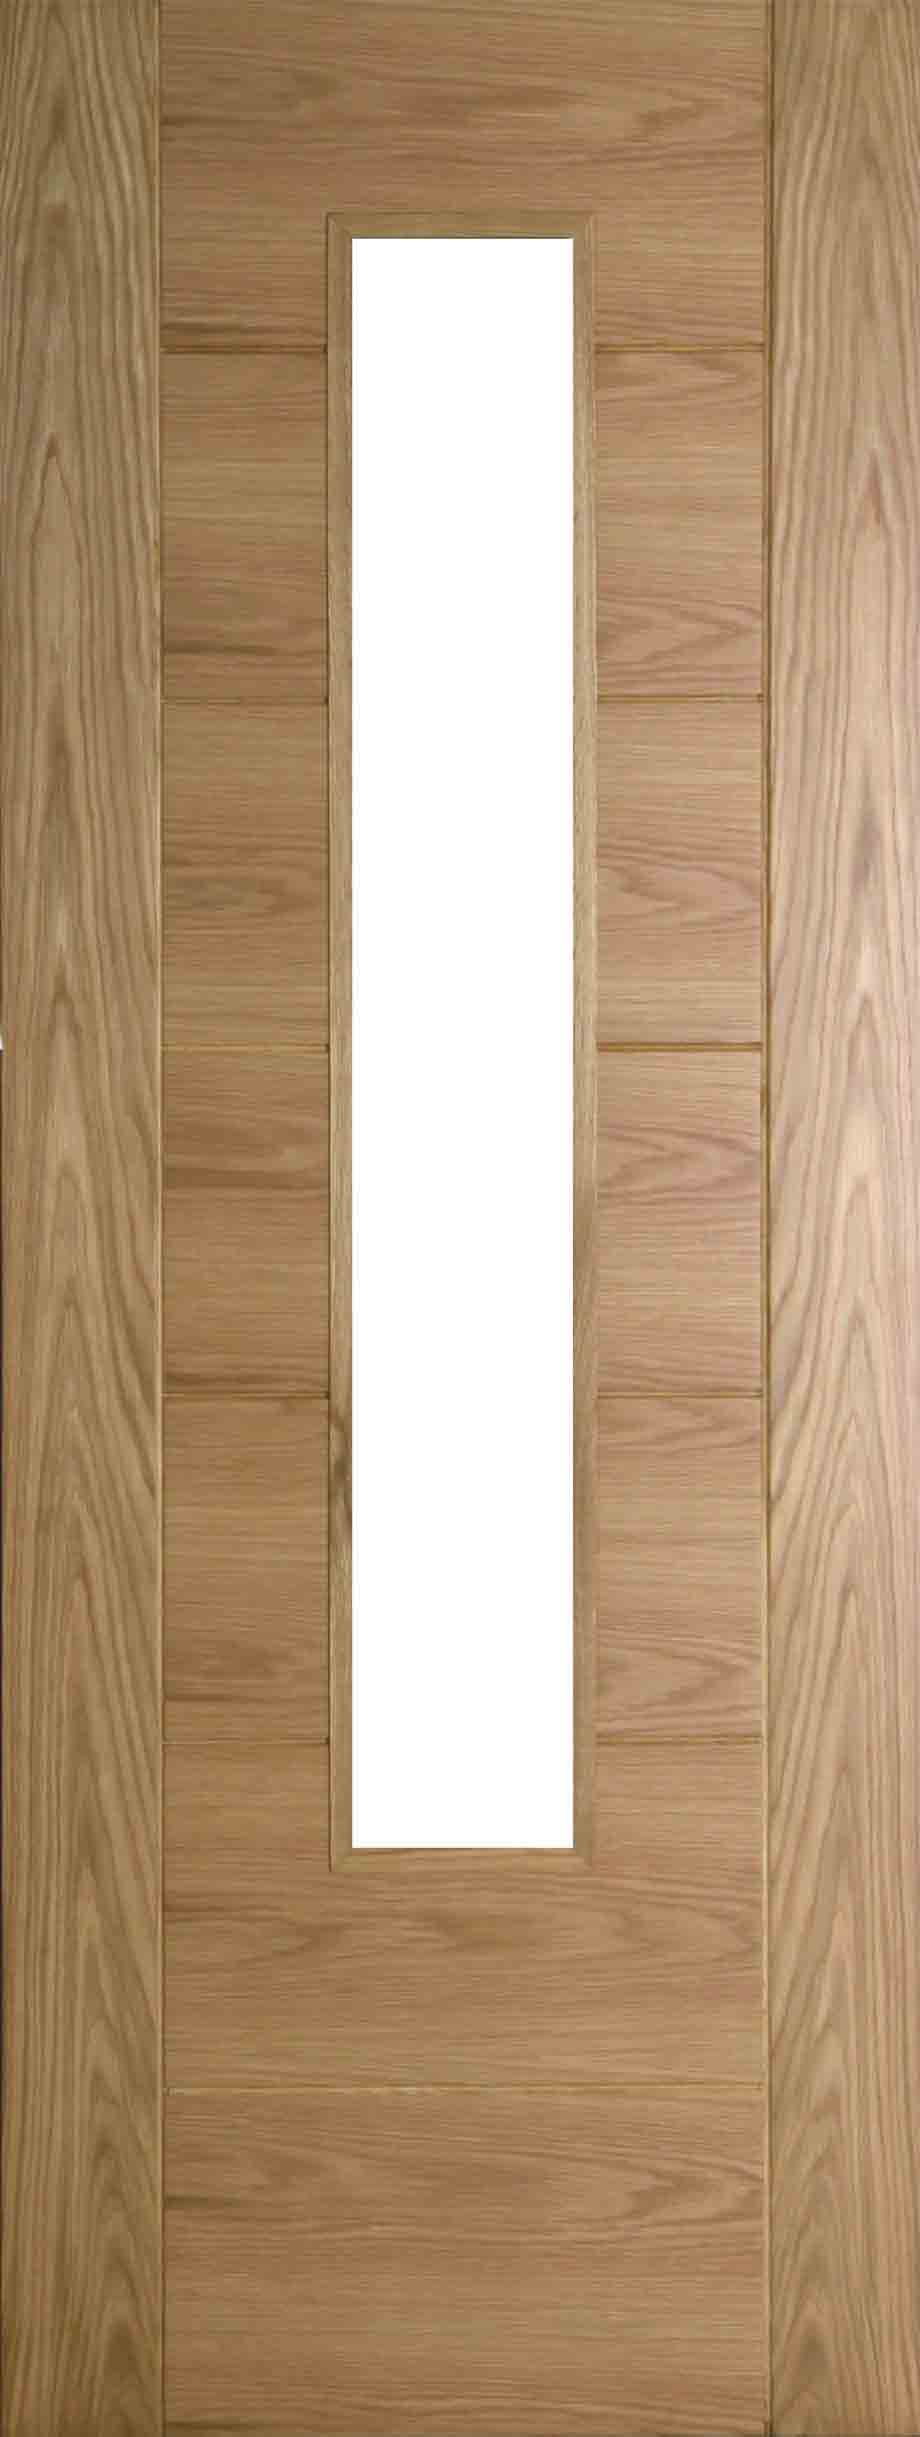 Internal Oak 993 Door Prefinished With Clear Flat Glass & Finewood Prefinished Doors u0026 Doors pezcame.com